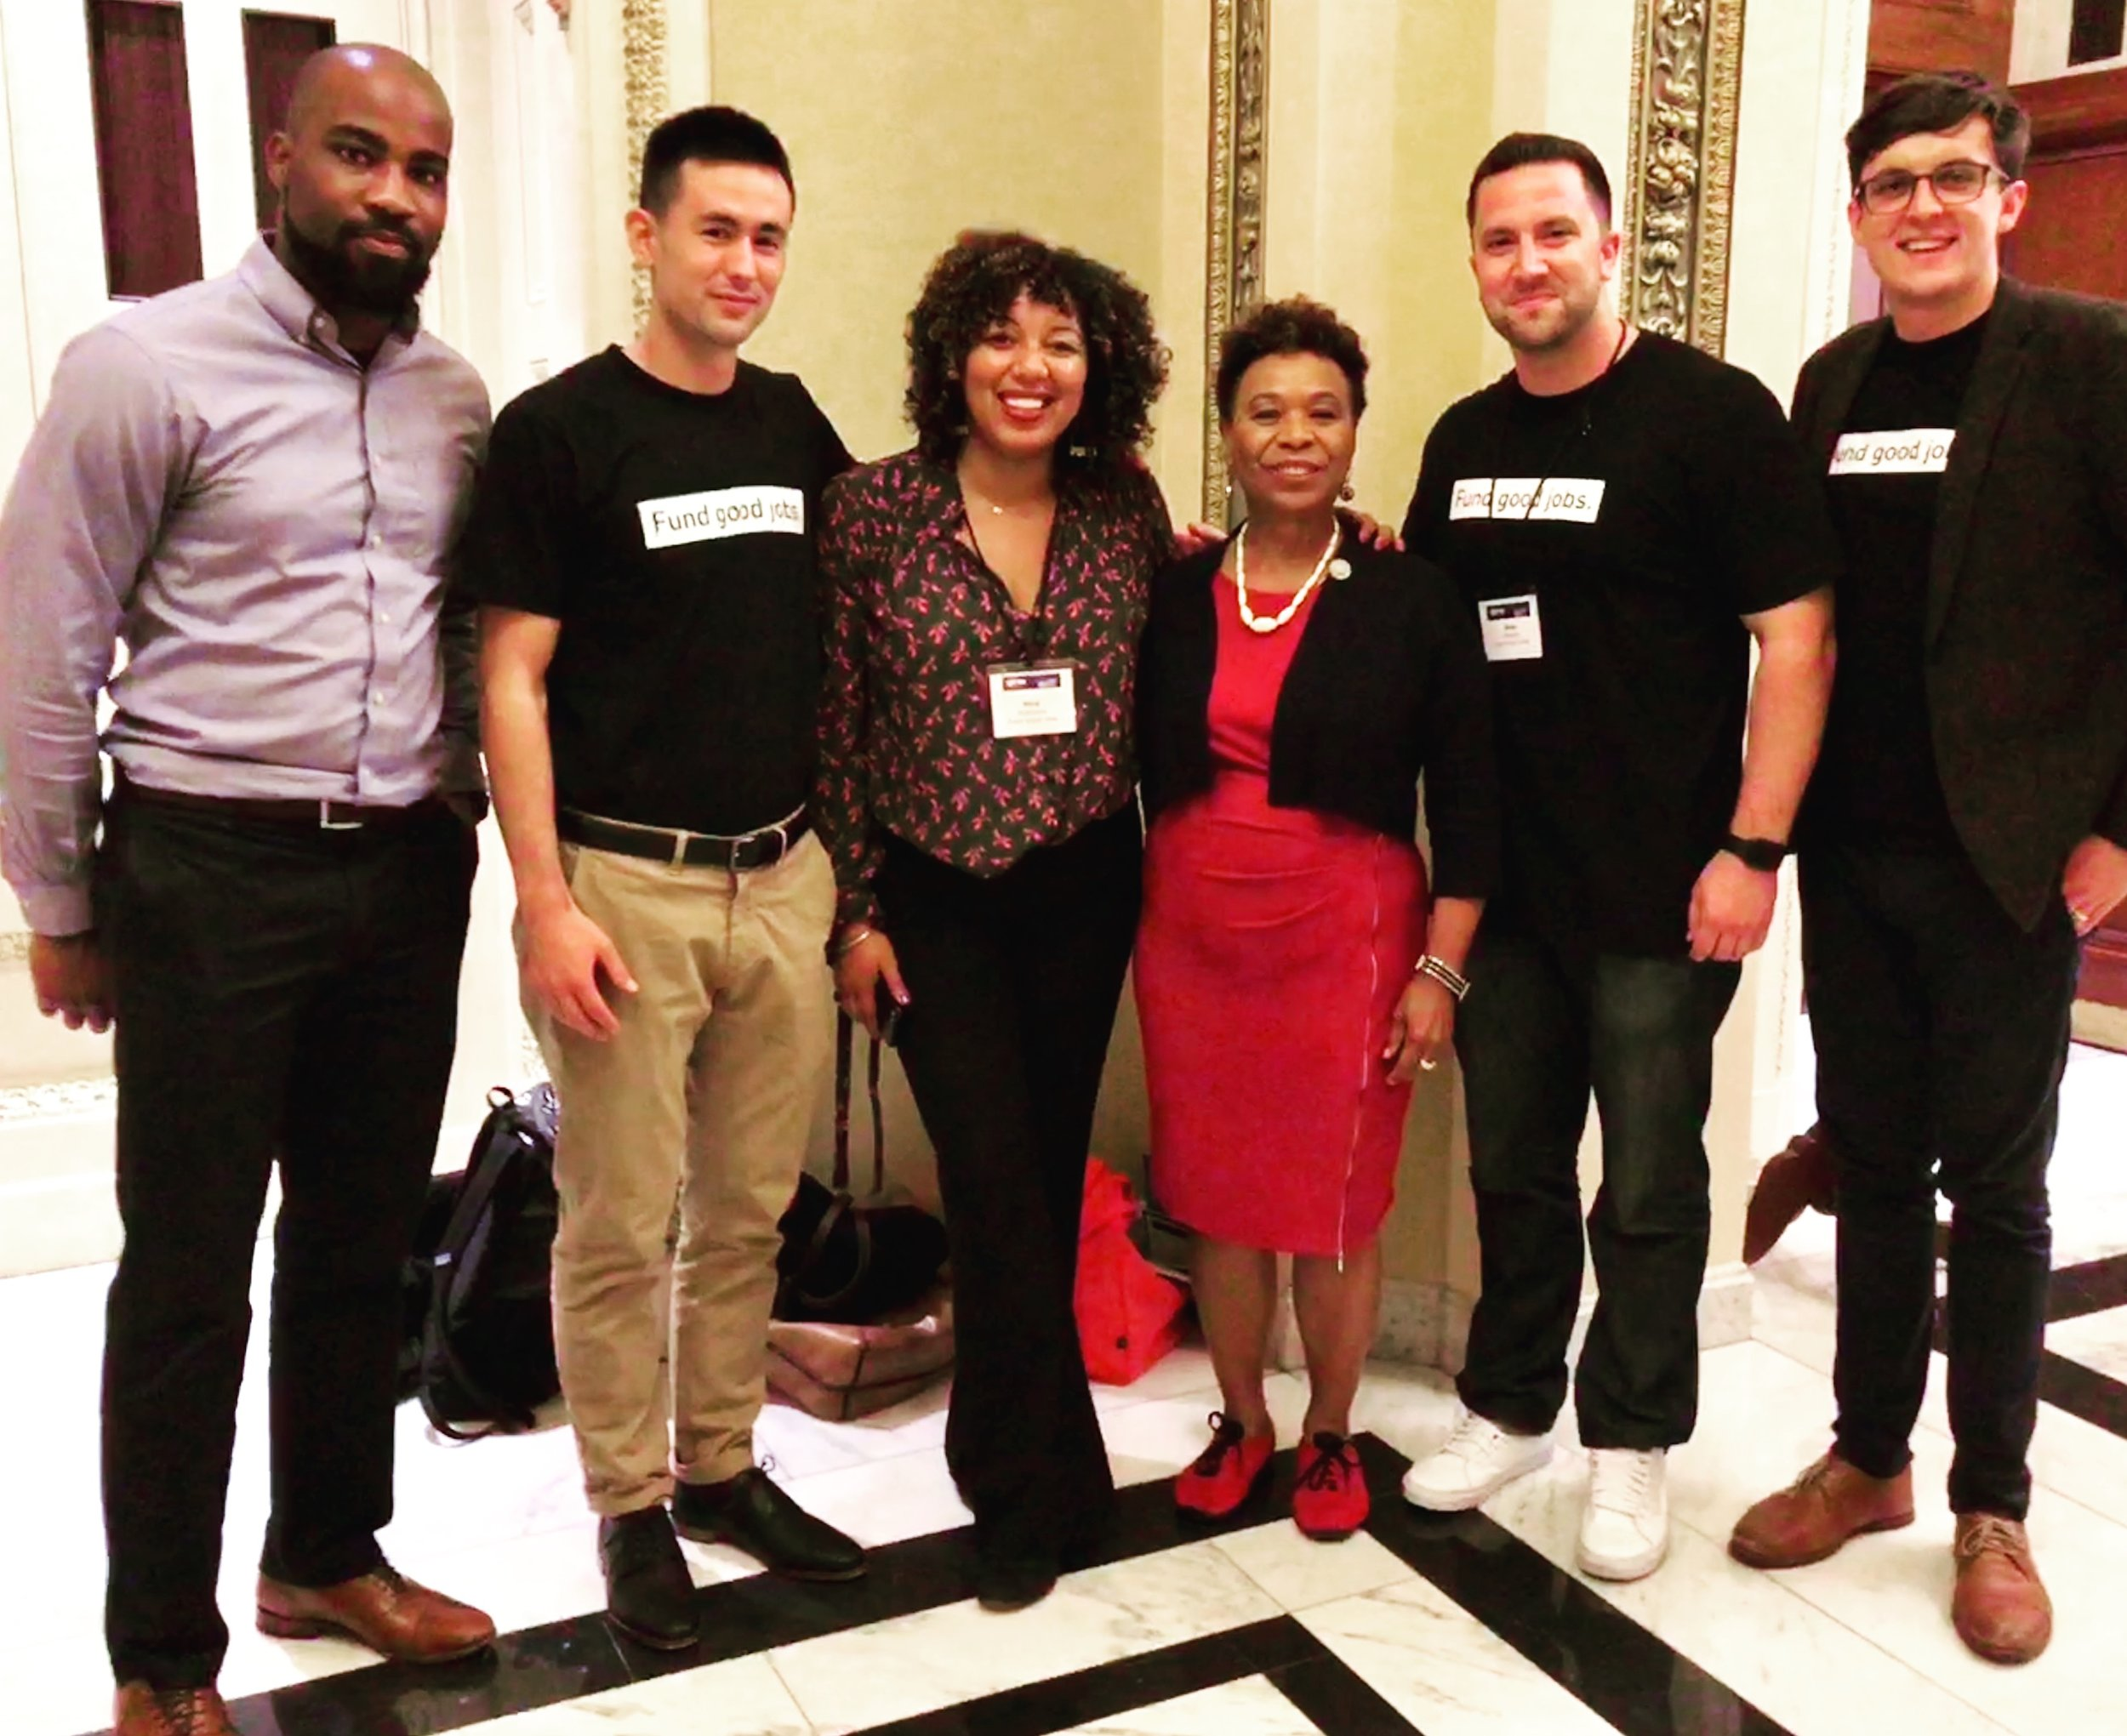 Members of the ICA Fund Good Jobs team with Congresswoman Barbara Lee in Washington, DC.